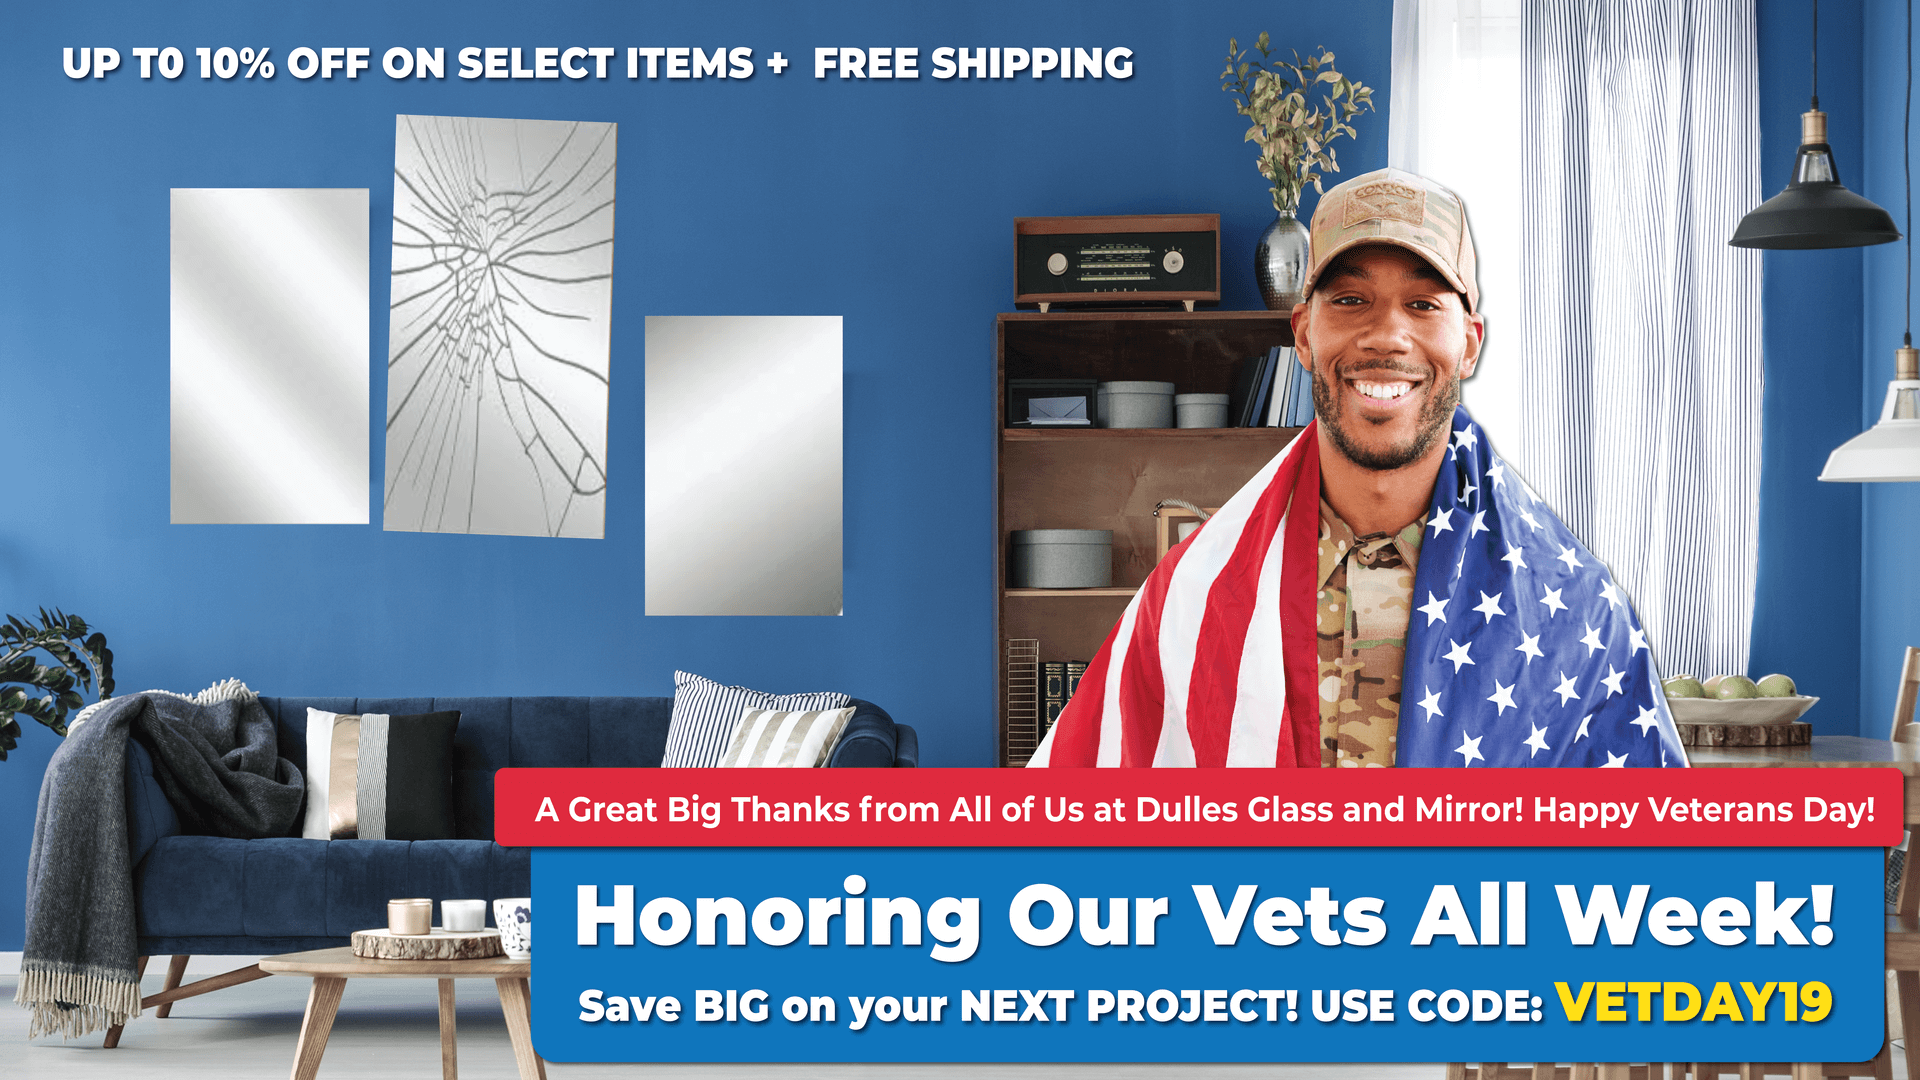 Up to 10% off select items and free shipping in November!